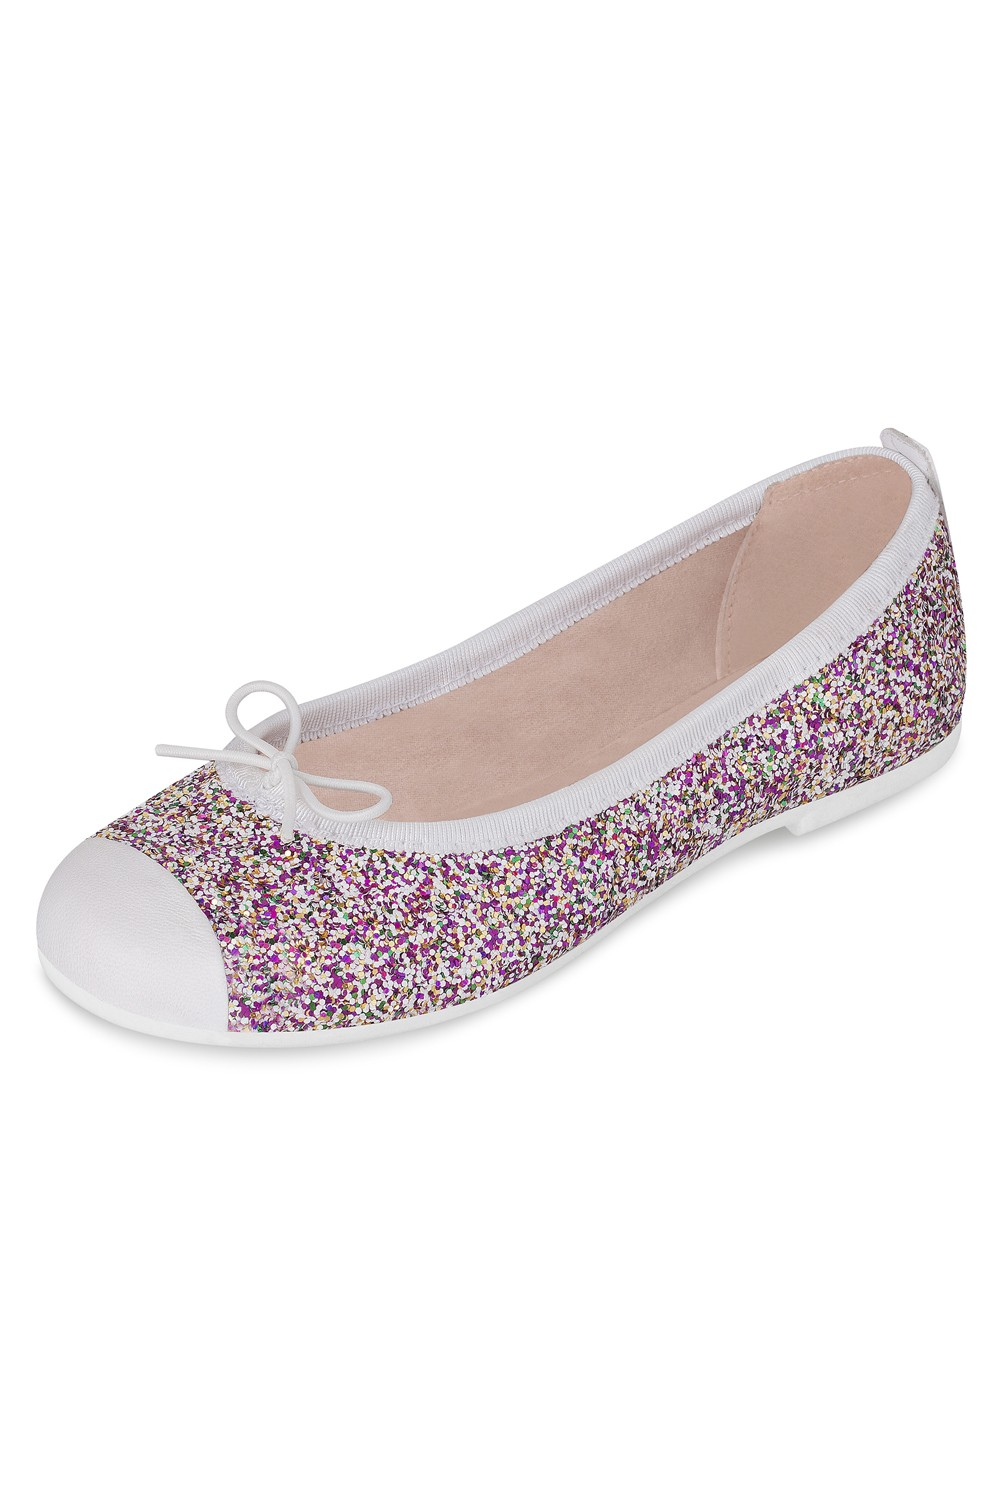 Noemi Girls Fashion Shoes